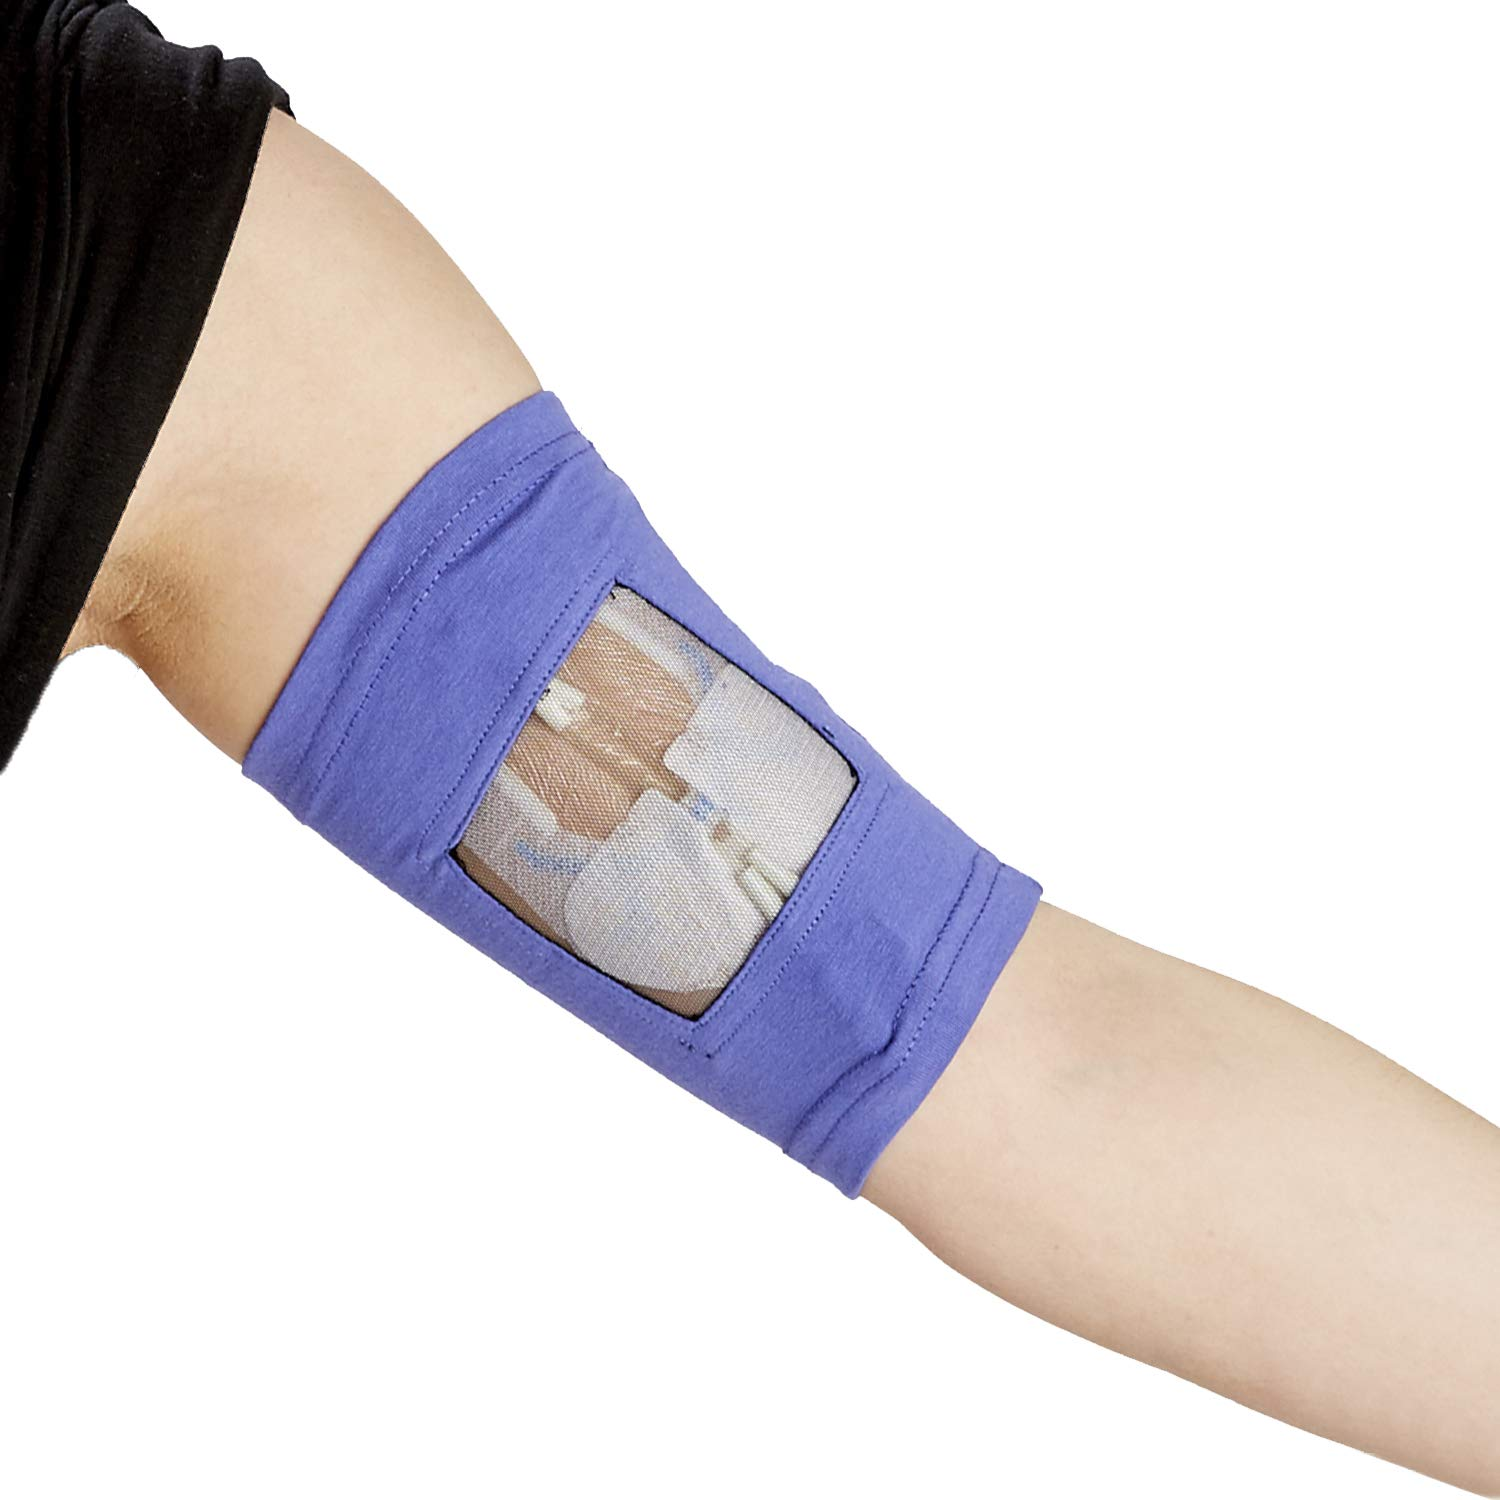 "Care+Wear Ultra-Soft Antimicrobial PICC Line Cover Violet M 13"" - 15"" Bicep"